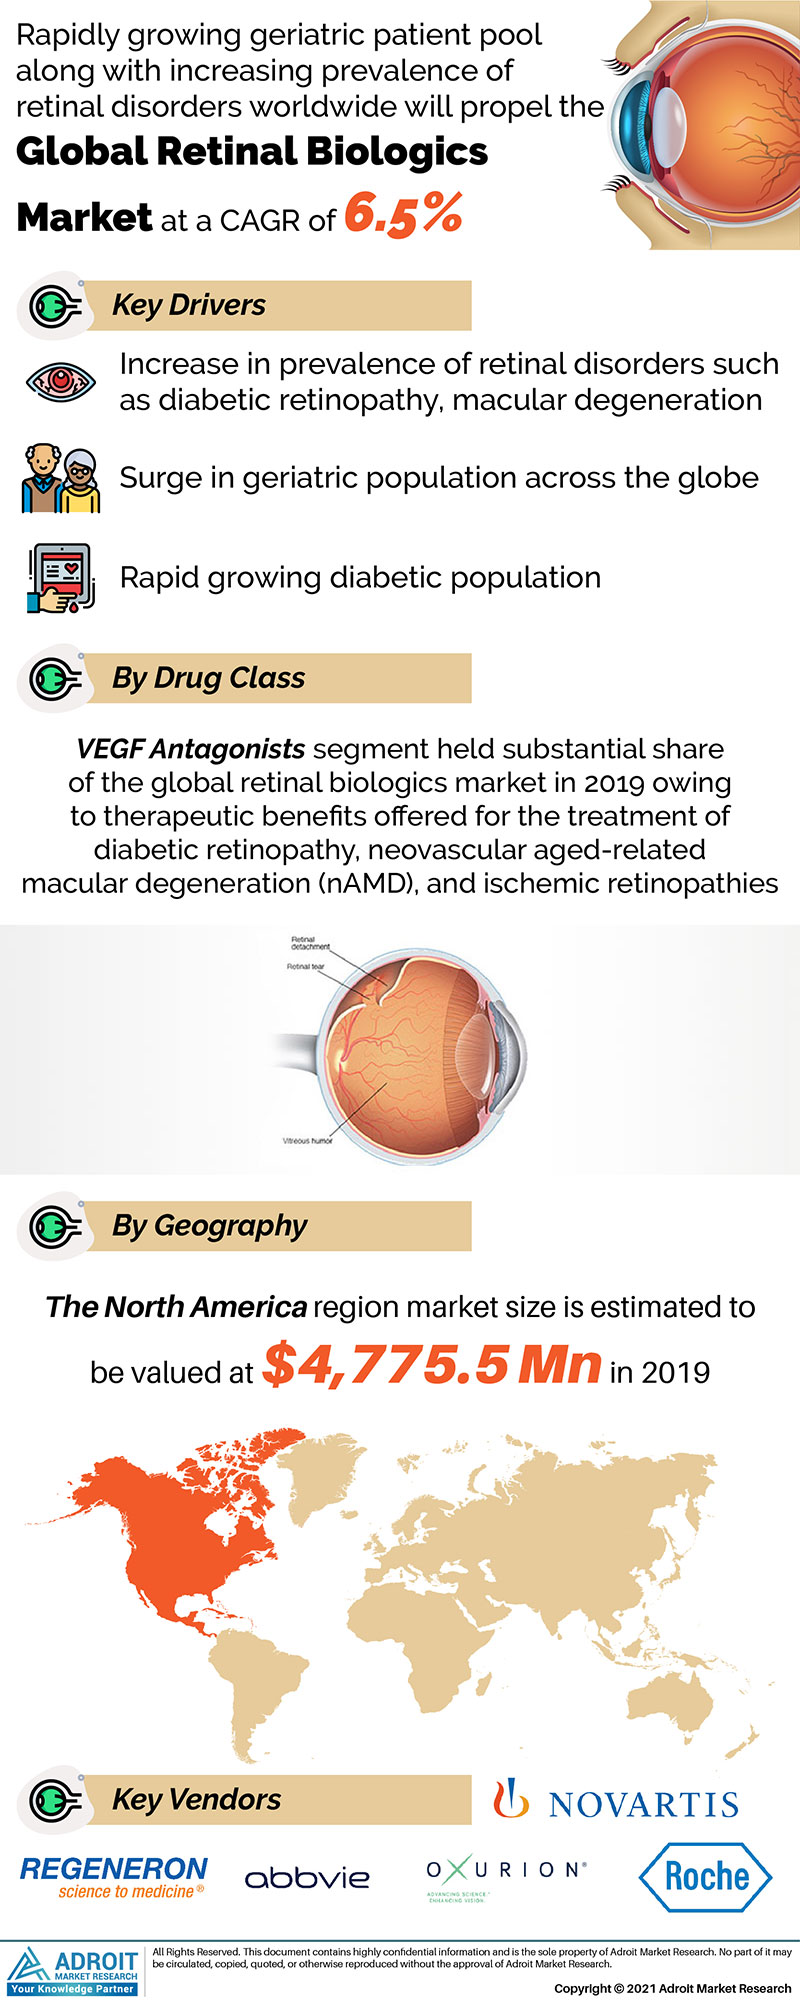 Global Retinal Biologics Market Size 2017 By Type, Device, Region and Forecast 2018 to 2025